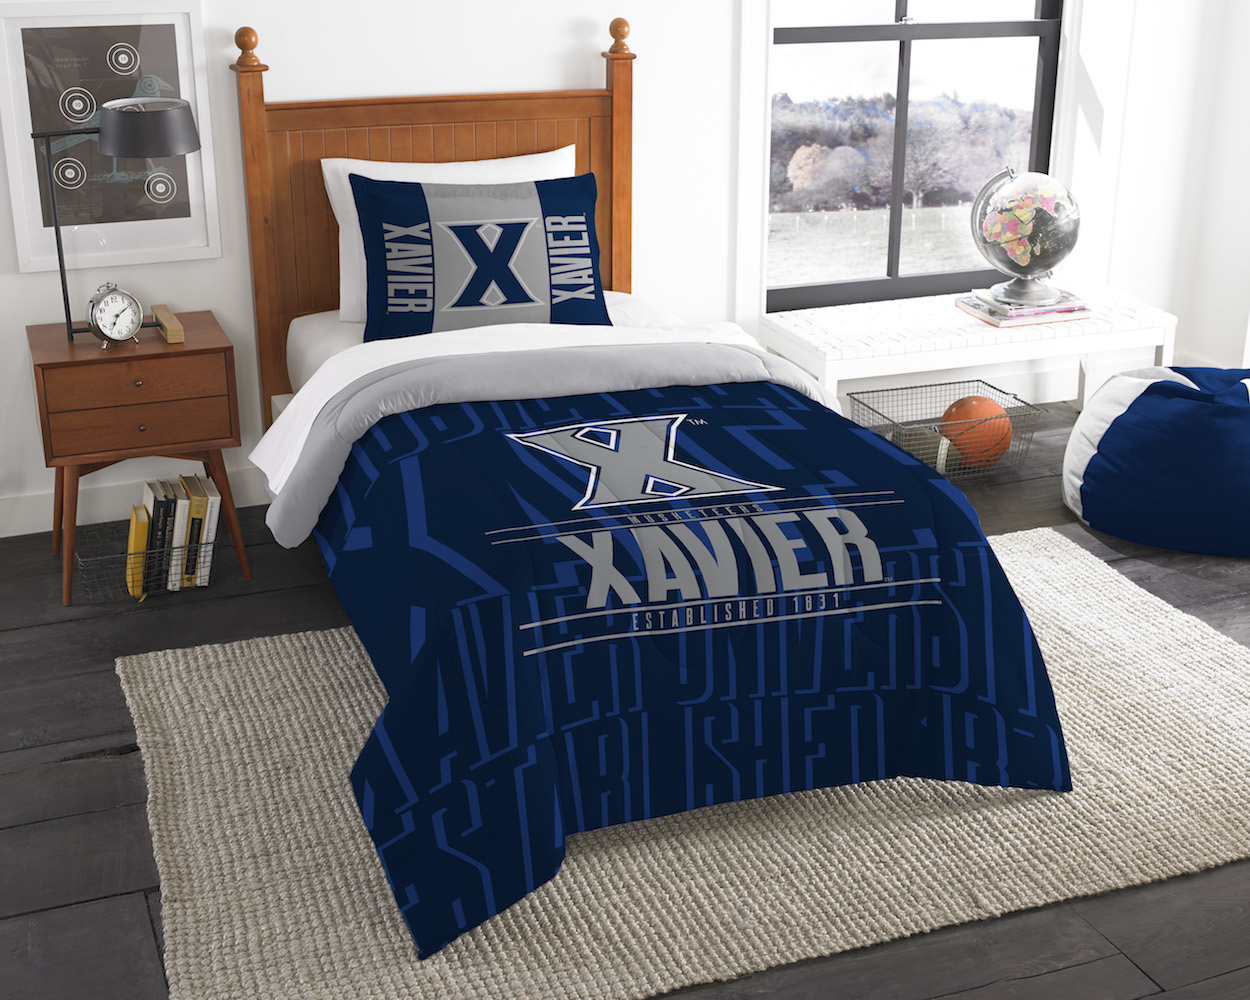 Xavier Musketeers Twin Comforter Set with Sham